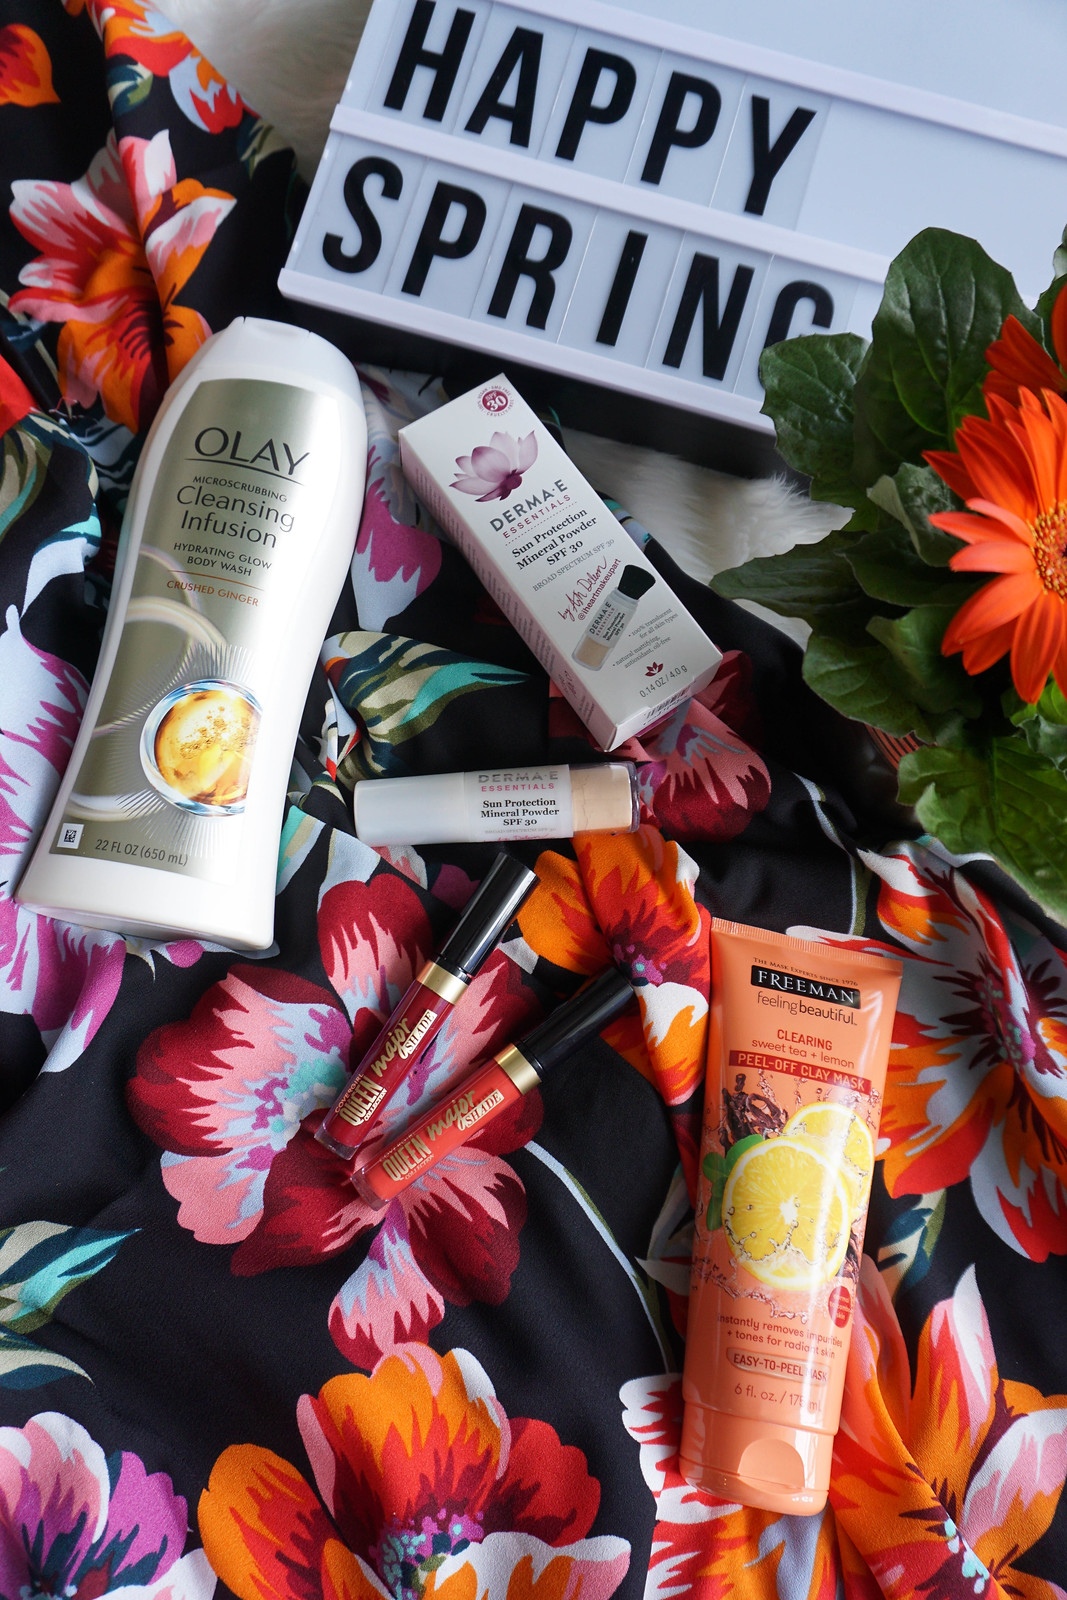 Beauty-Makeup-Skincare-Products-You-Should-Try-This-Spring-Flat-Lay-Living-After-Midnite-Beauty-Blogger